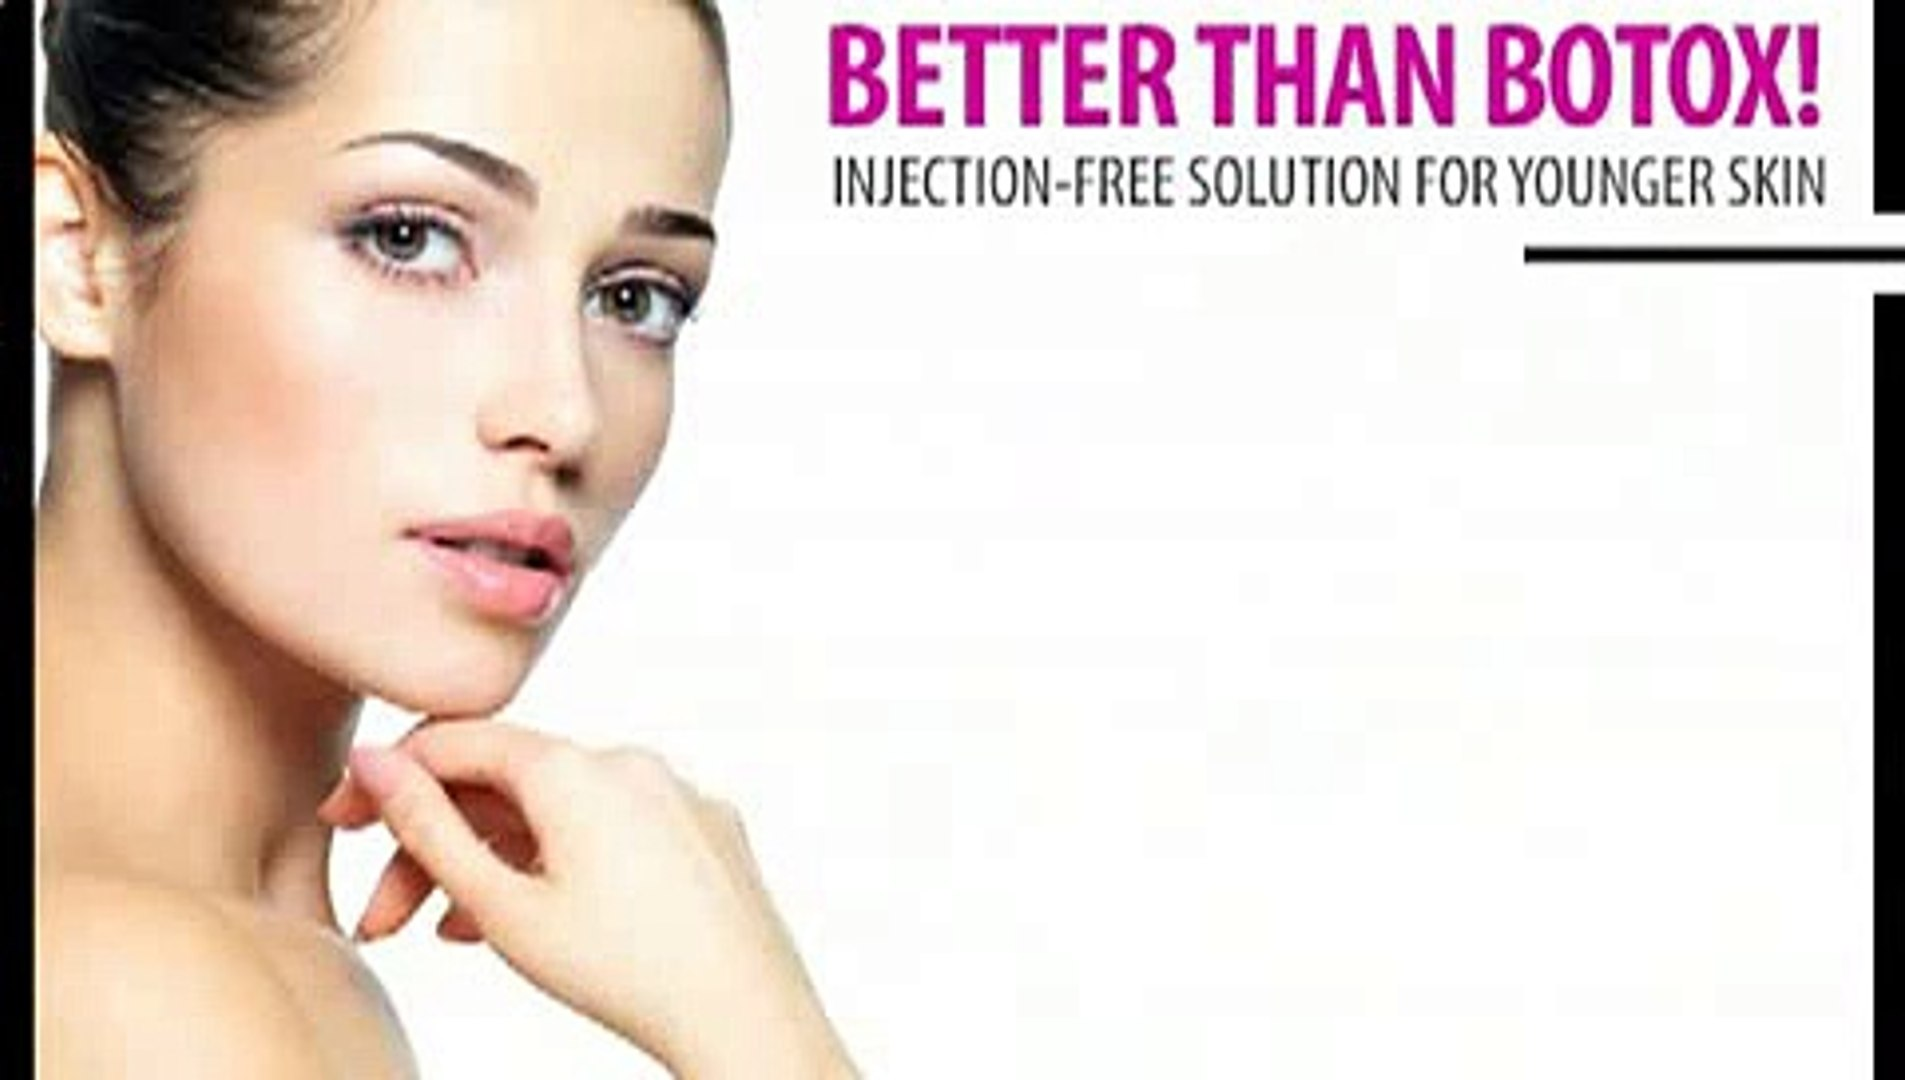 Ageless Body System | My Acne  | Anti Wrinkle Cream  | Anti Aging Cream  | Best Wrinkle Cream  | Bes